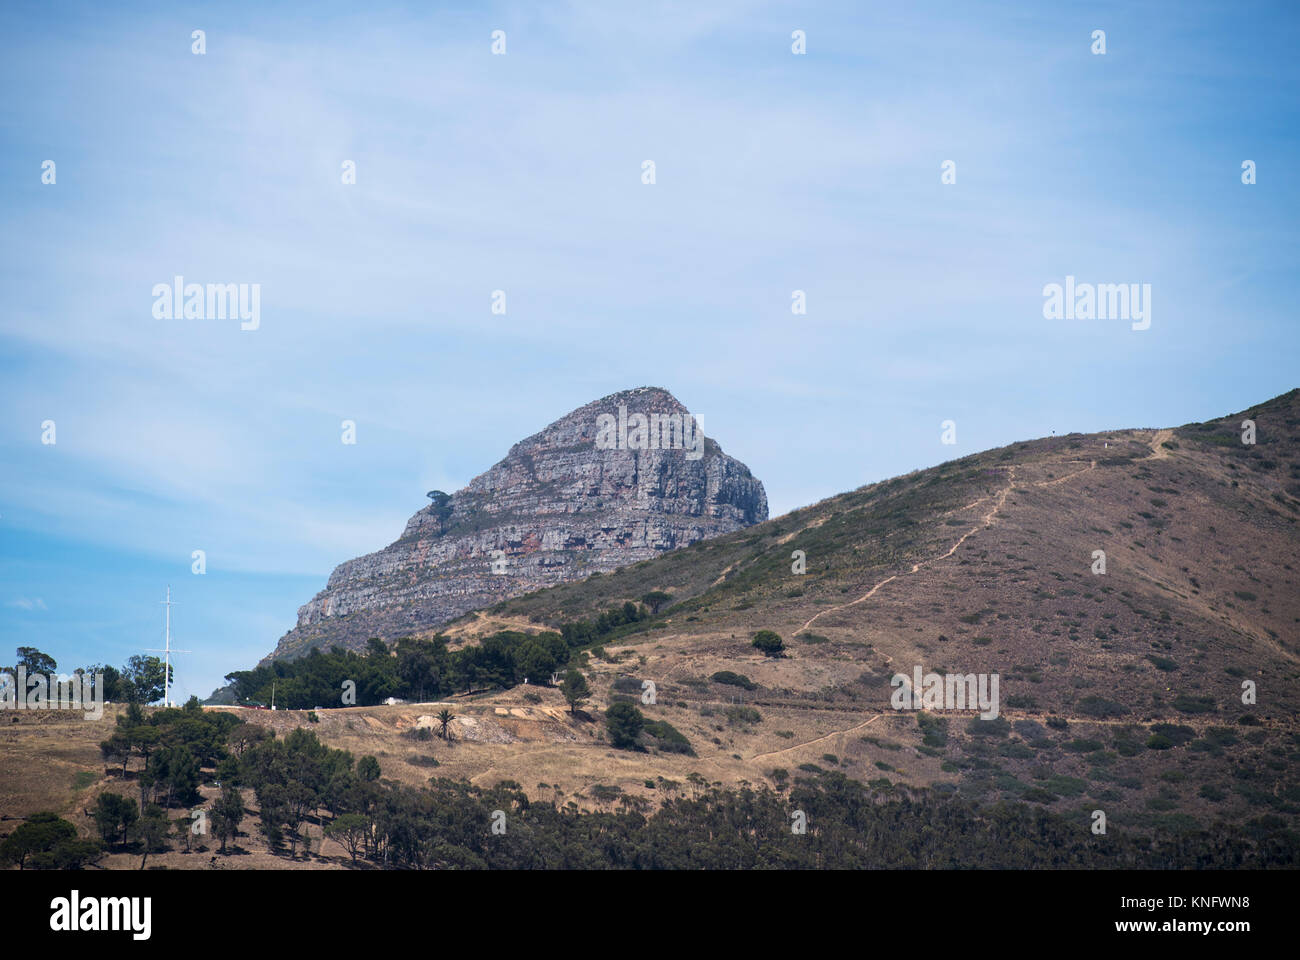 View of Lion's Head and Signal Hill in Cape Town, South Africa - Stock Image